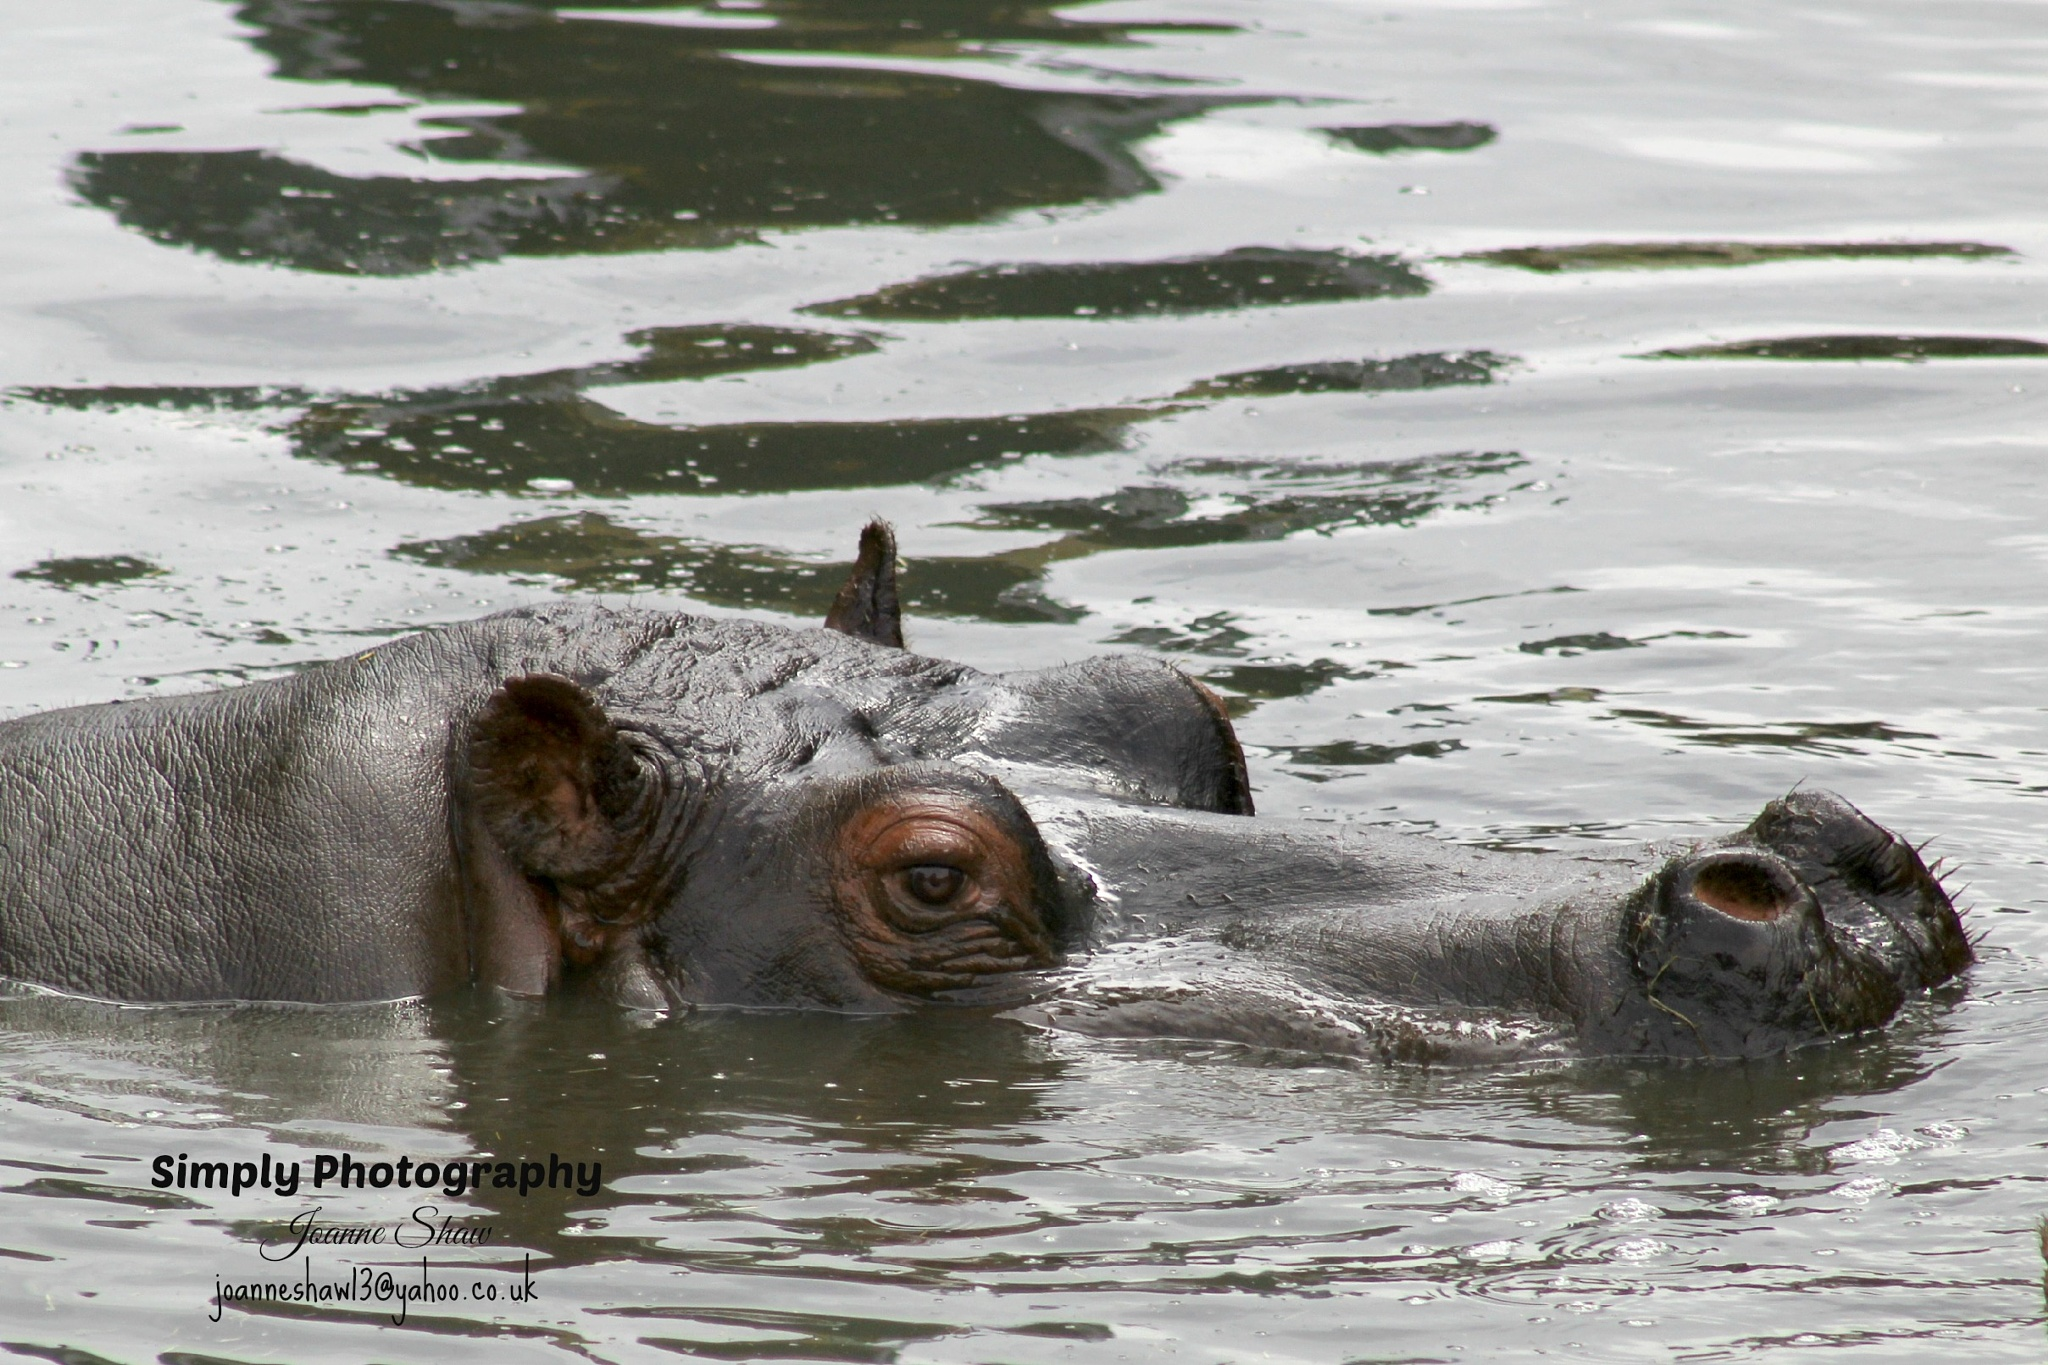 Hippopotamus by Joanne Laws